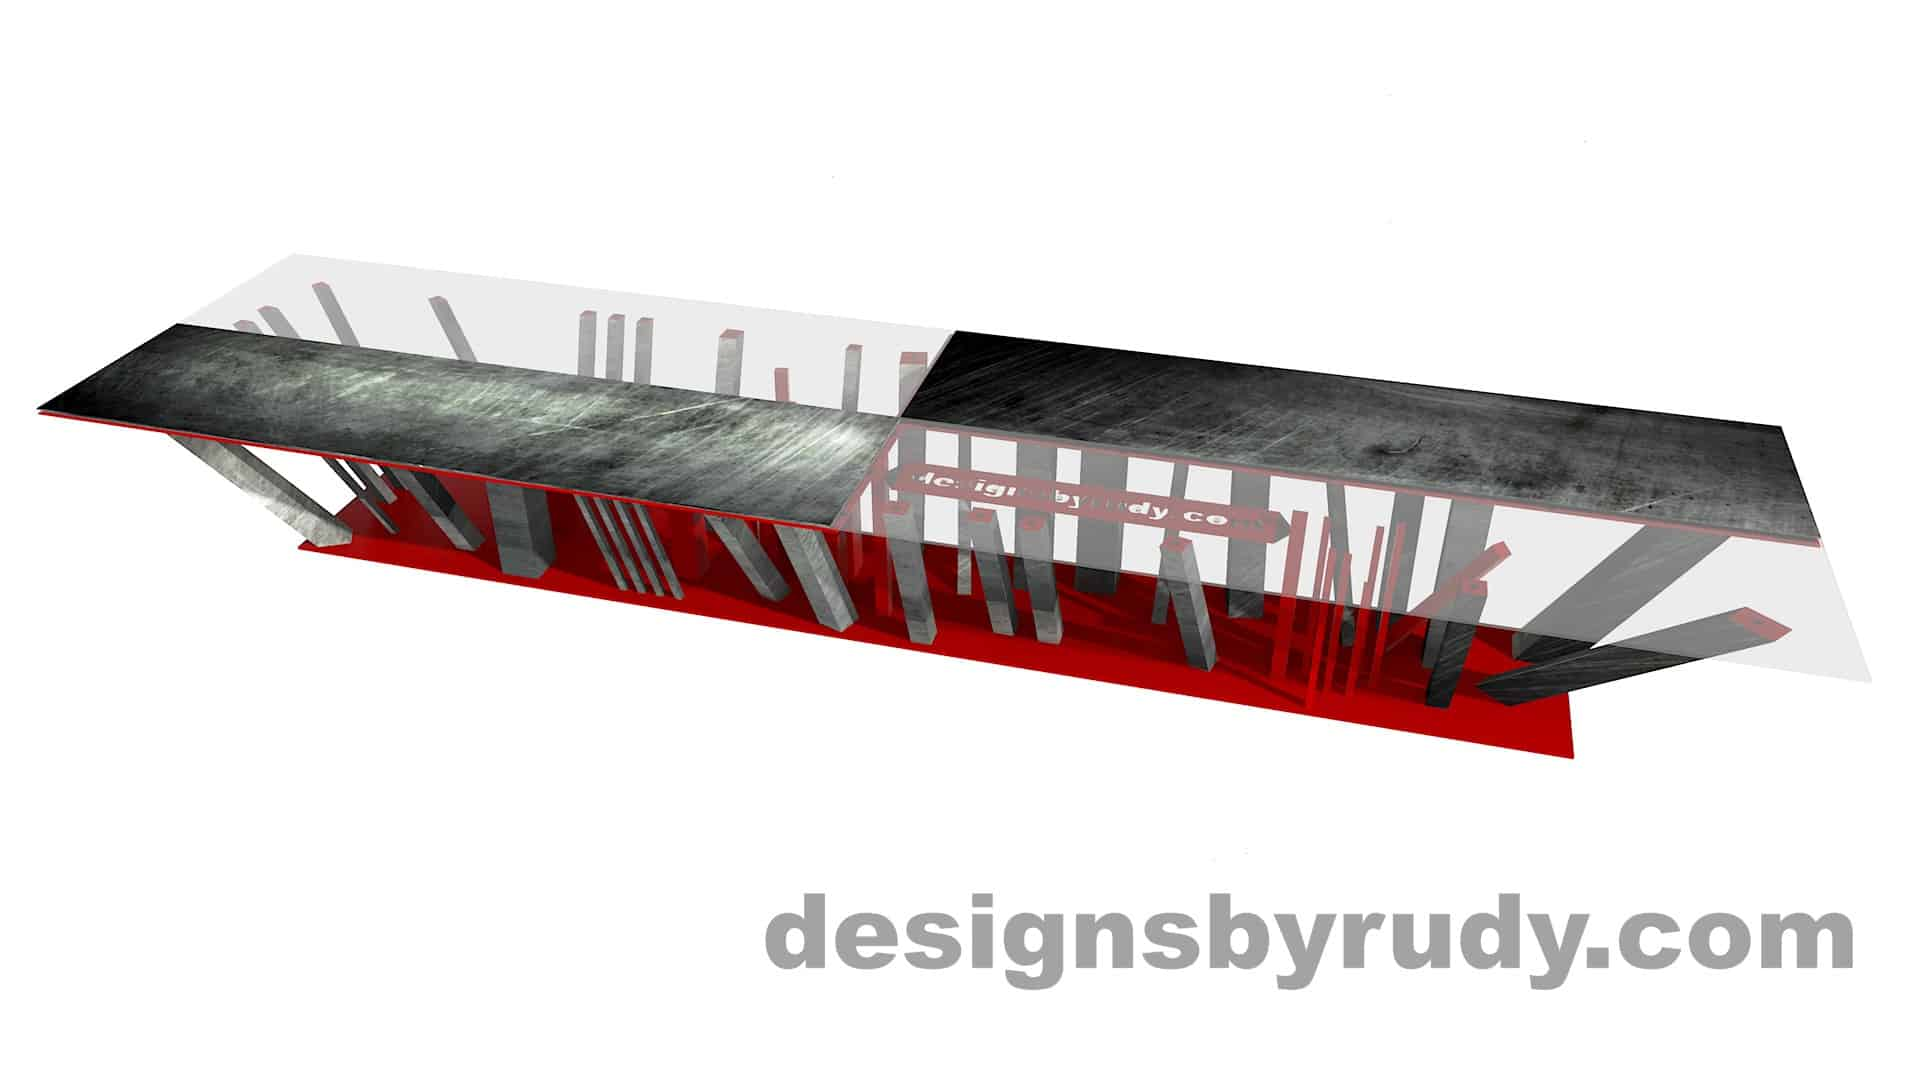 Custom conference table, steel base, glass and steel top, design and fabrication by designs by rudy